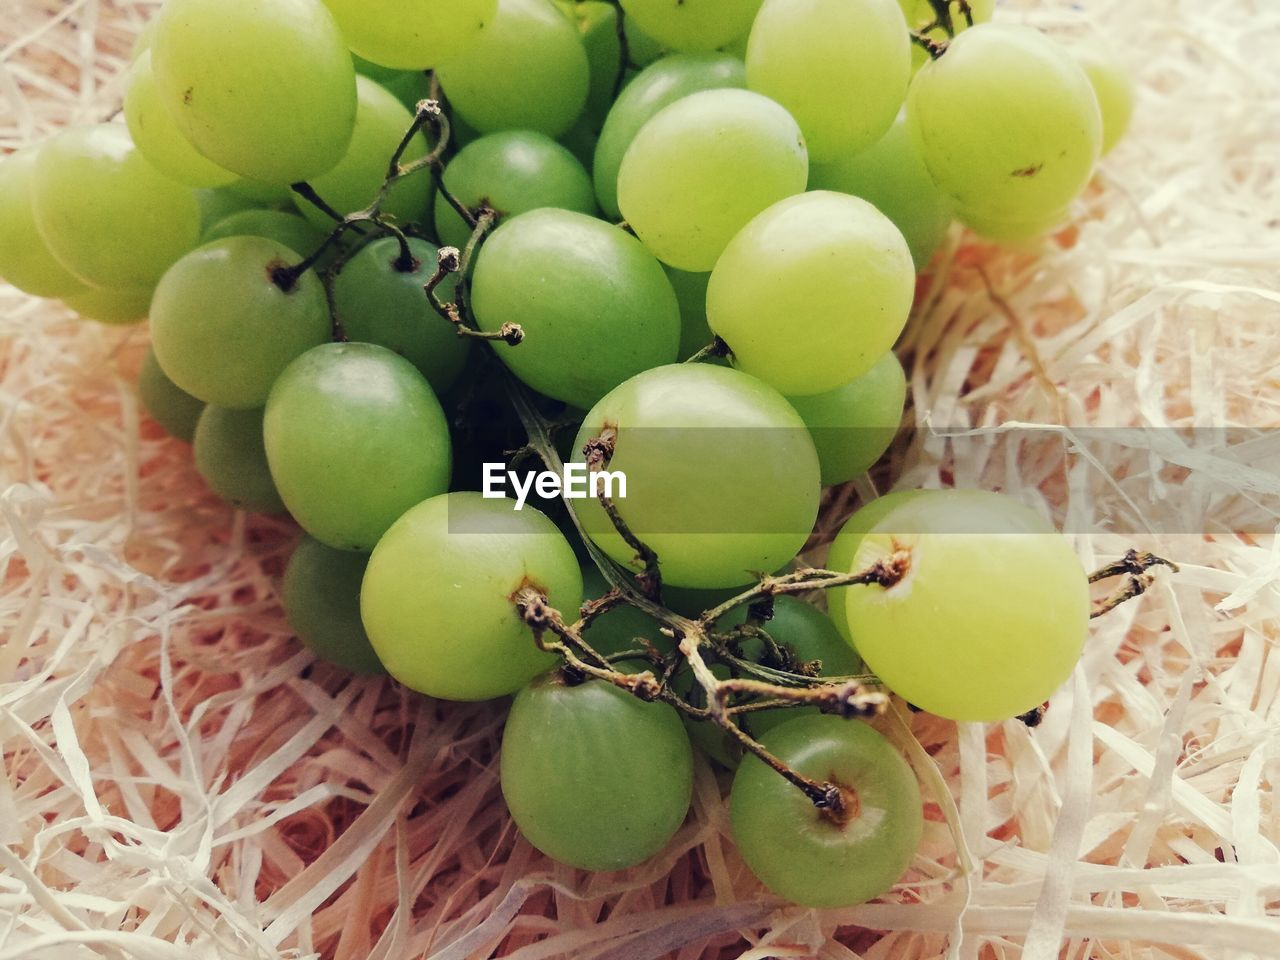 food, food and drink, healthy eating, fruit, wellbeing, freshness, green color, no people, close-up, still life, grape, plant, day, selective focus, raw food, nature, organic, outdoors, bunch